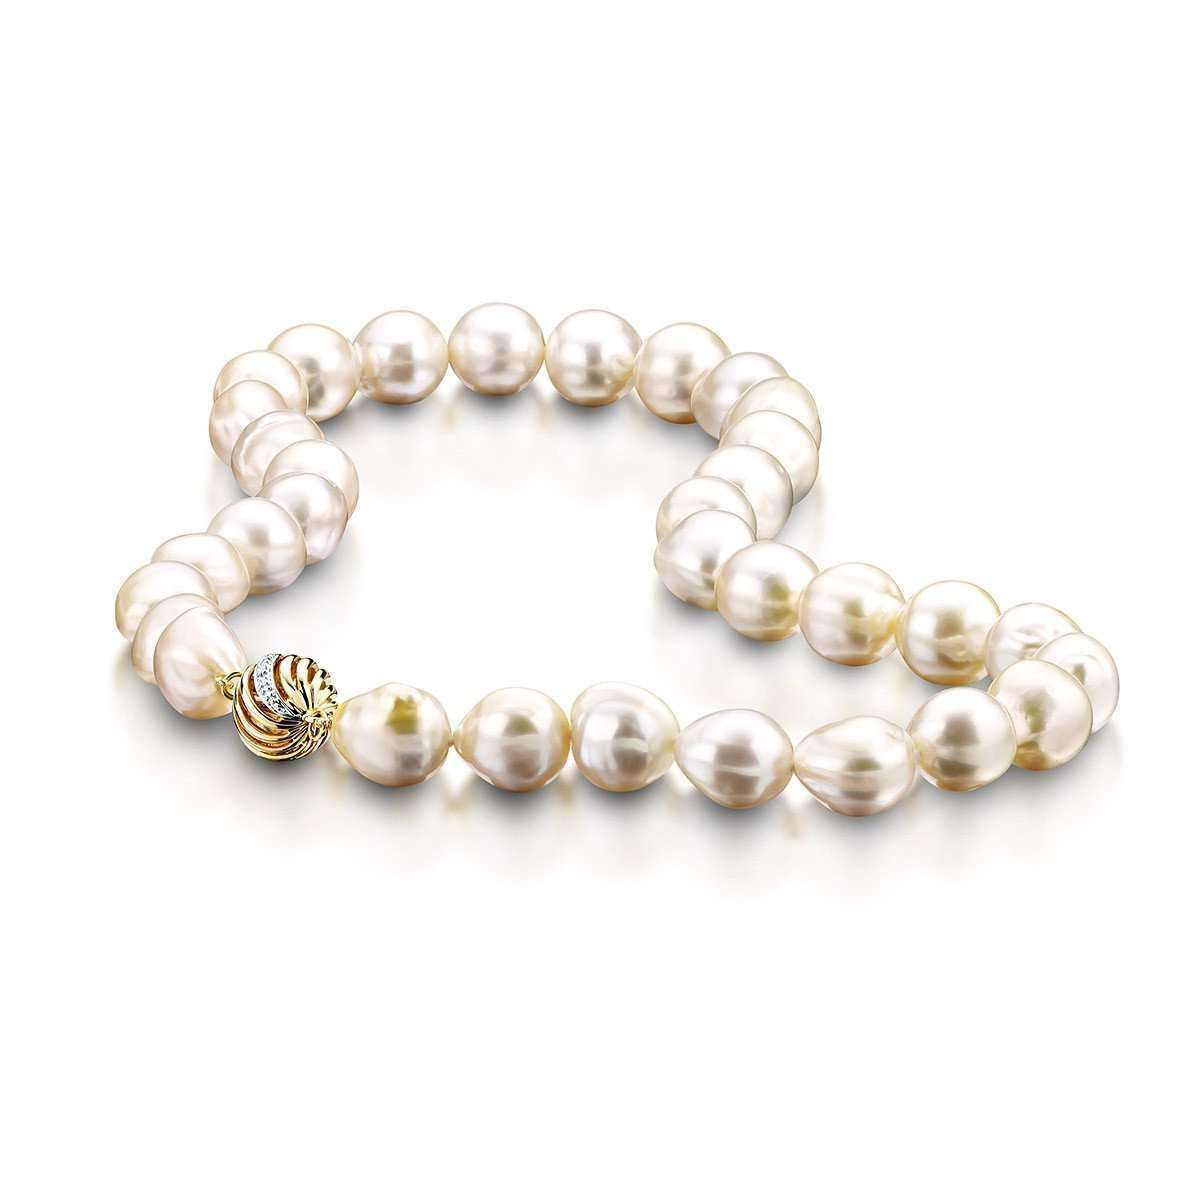 pearl necklaces, south sea pearls